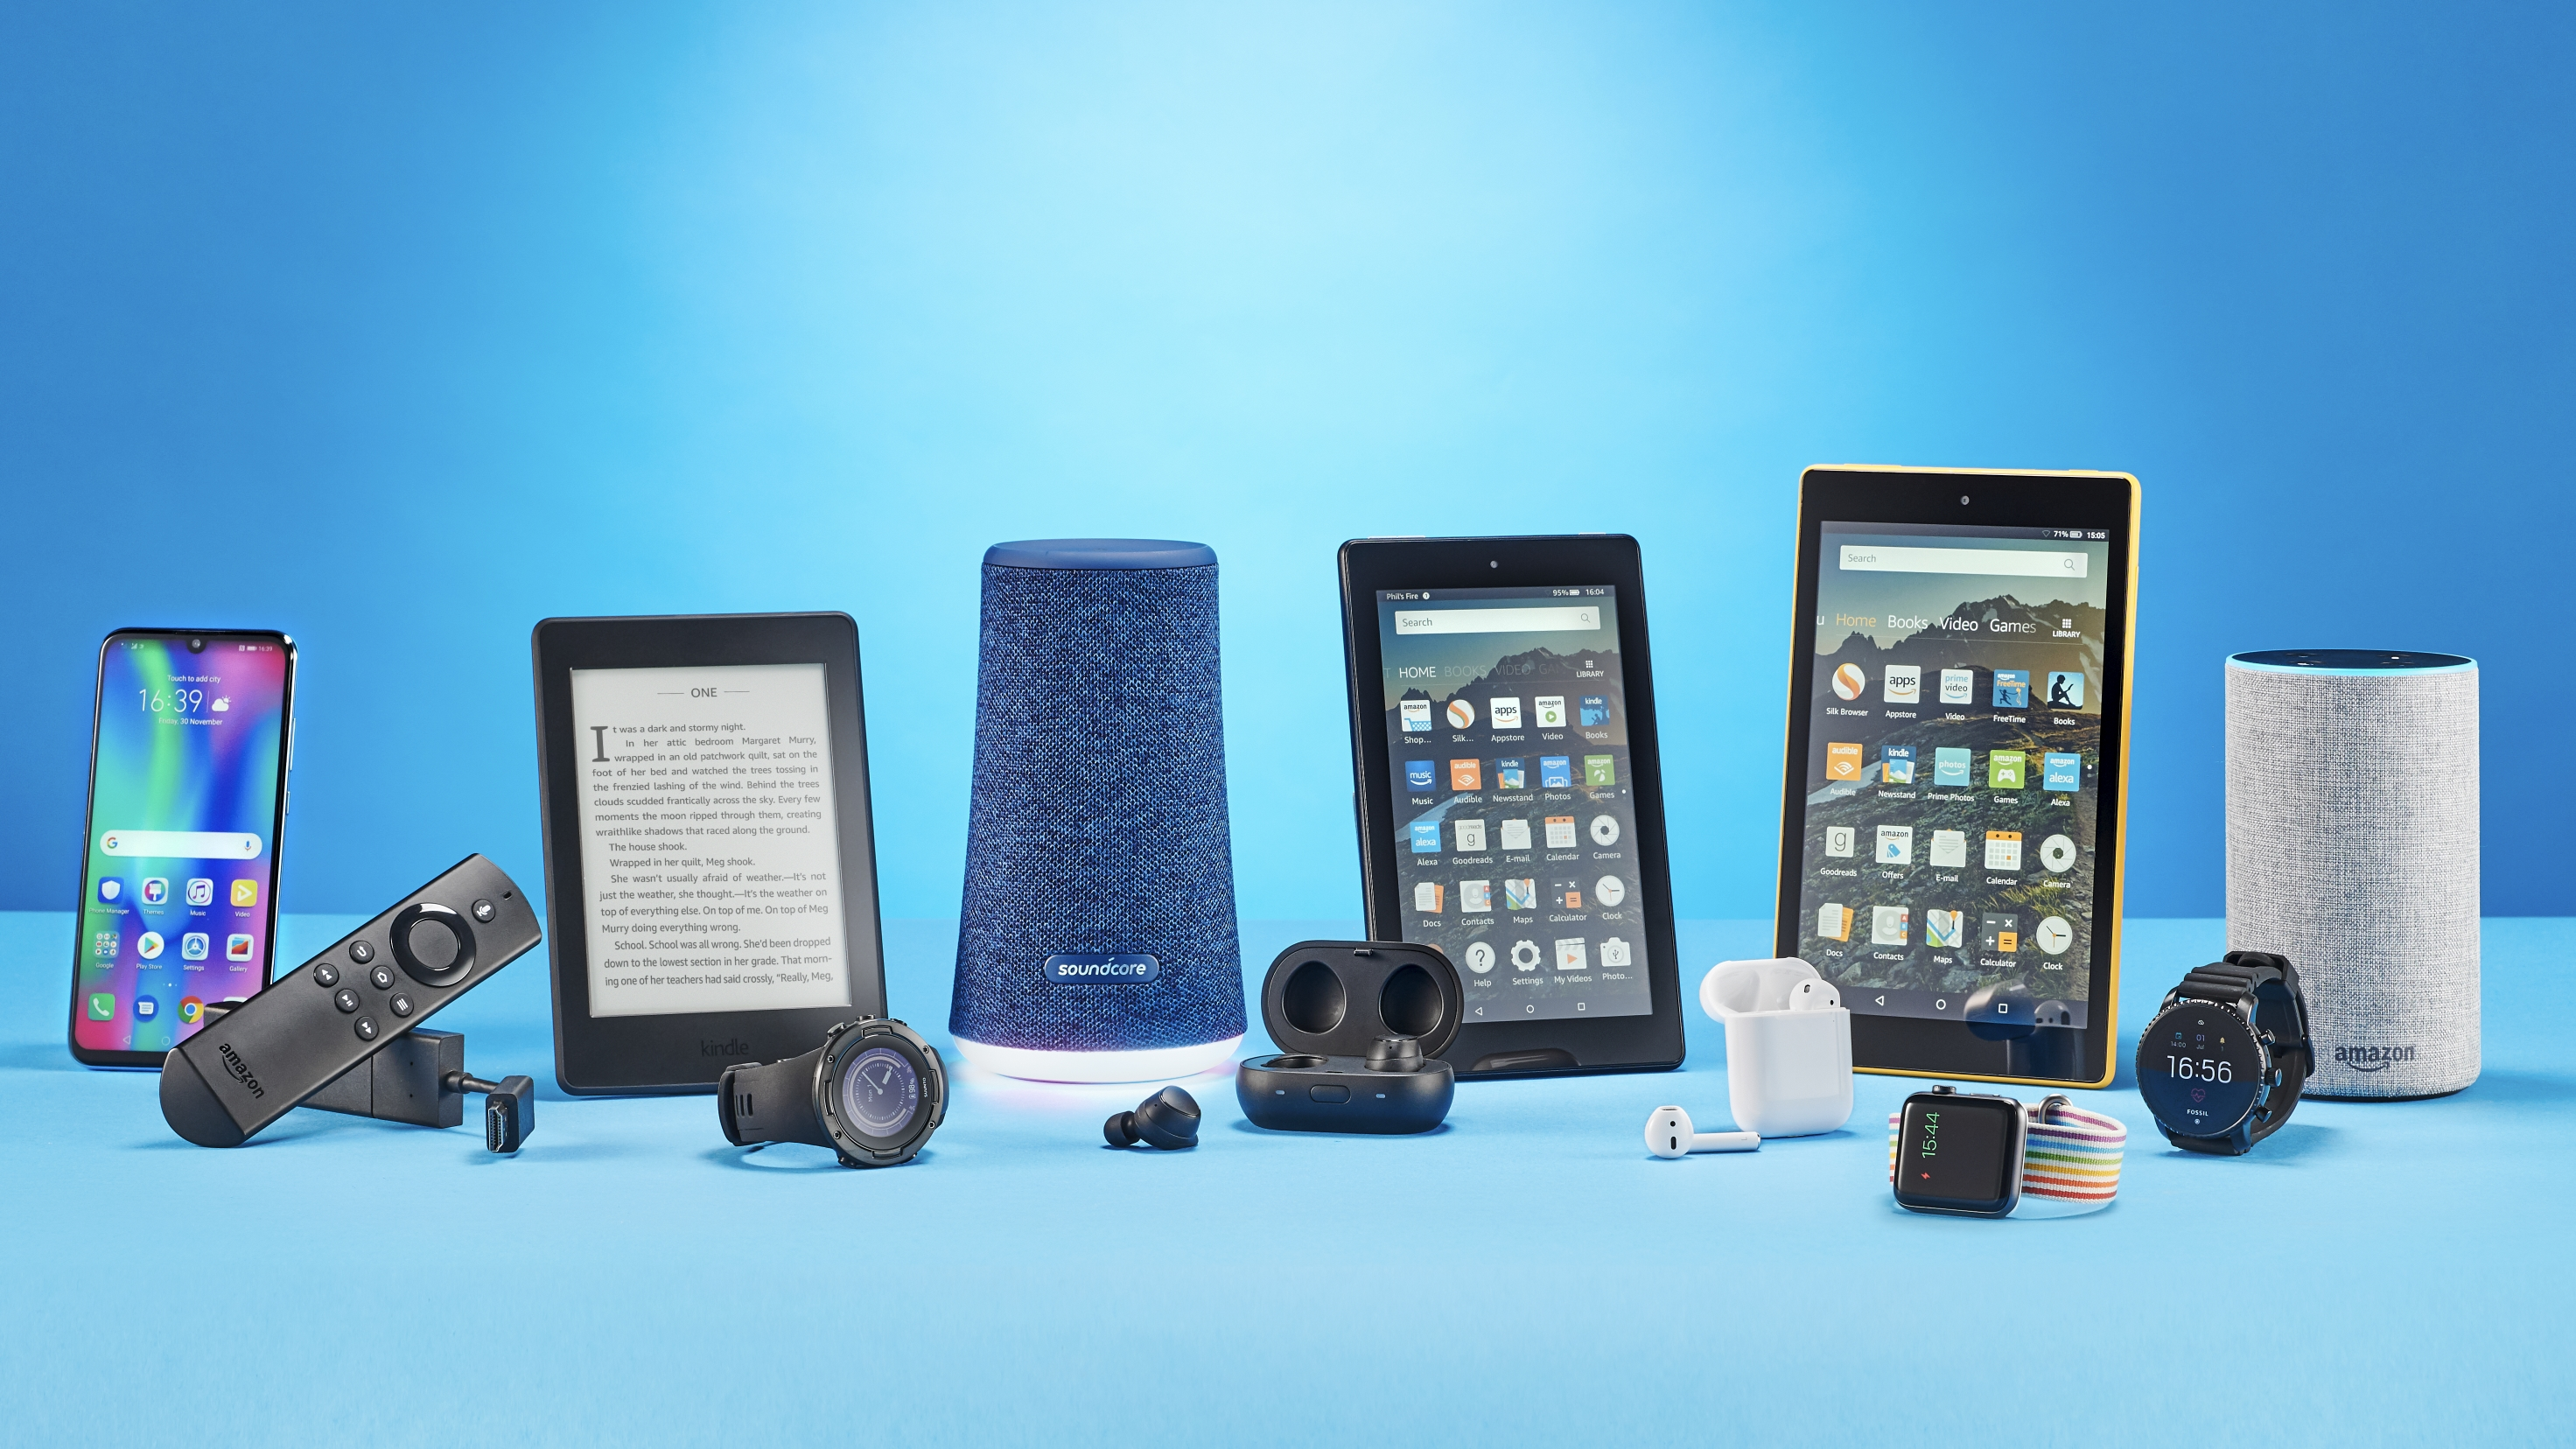 b84d03f3f46 The best Amazon Prime Day deals 2019: UK Edition | TechRadar